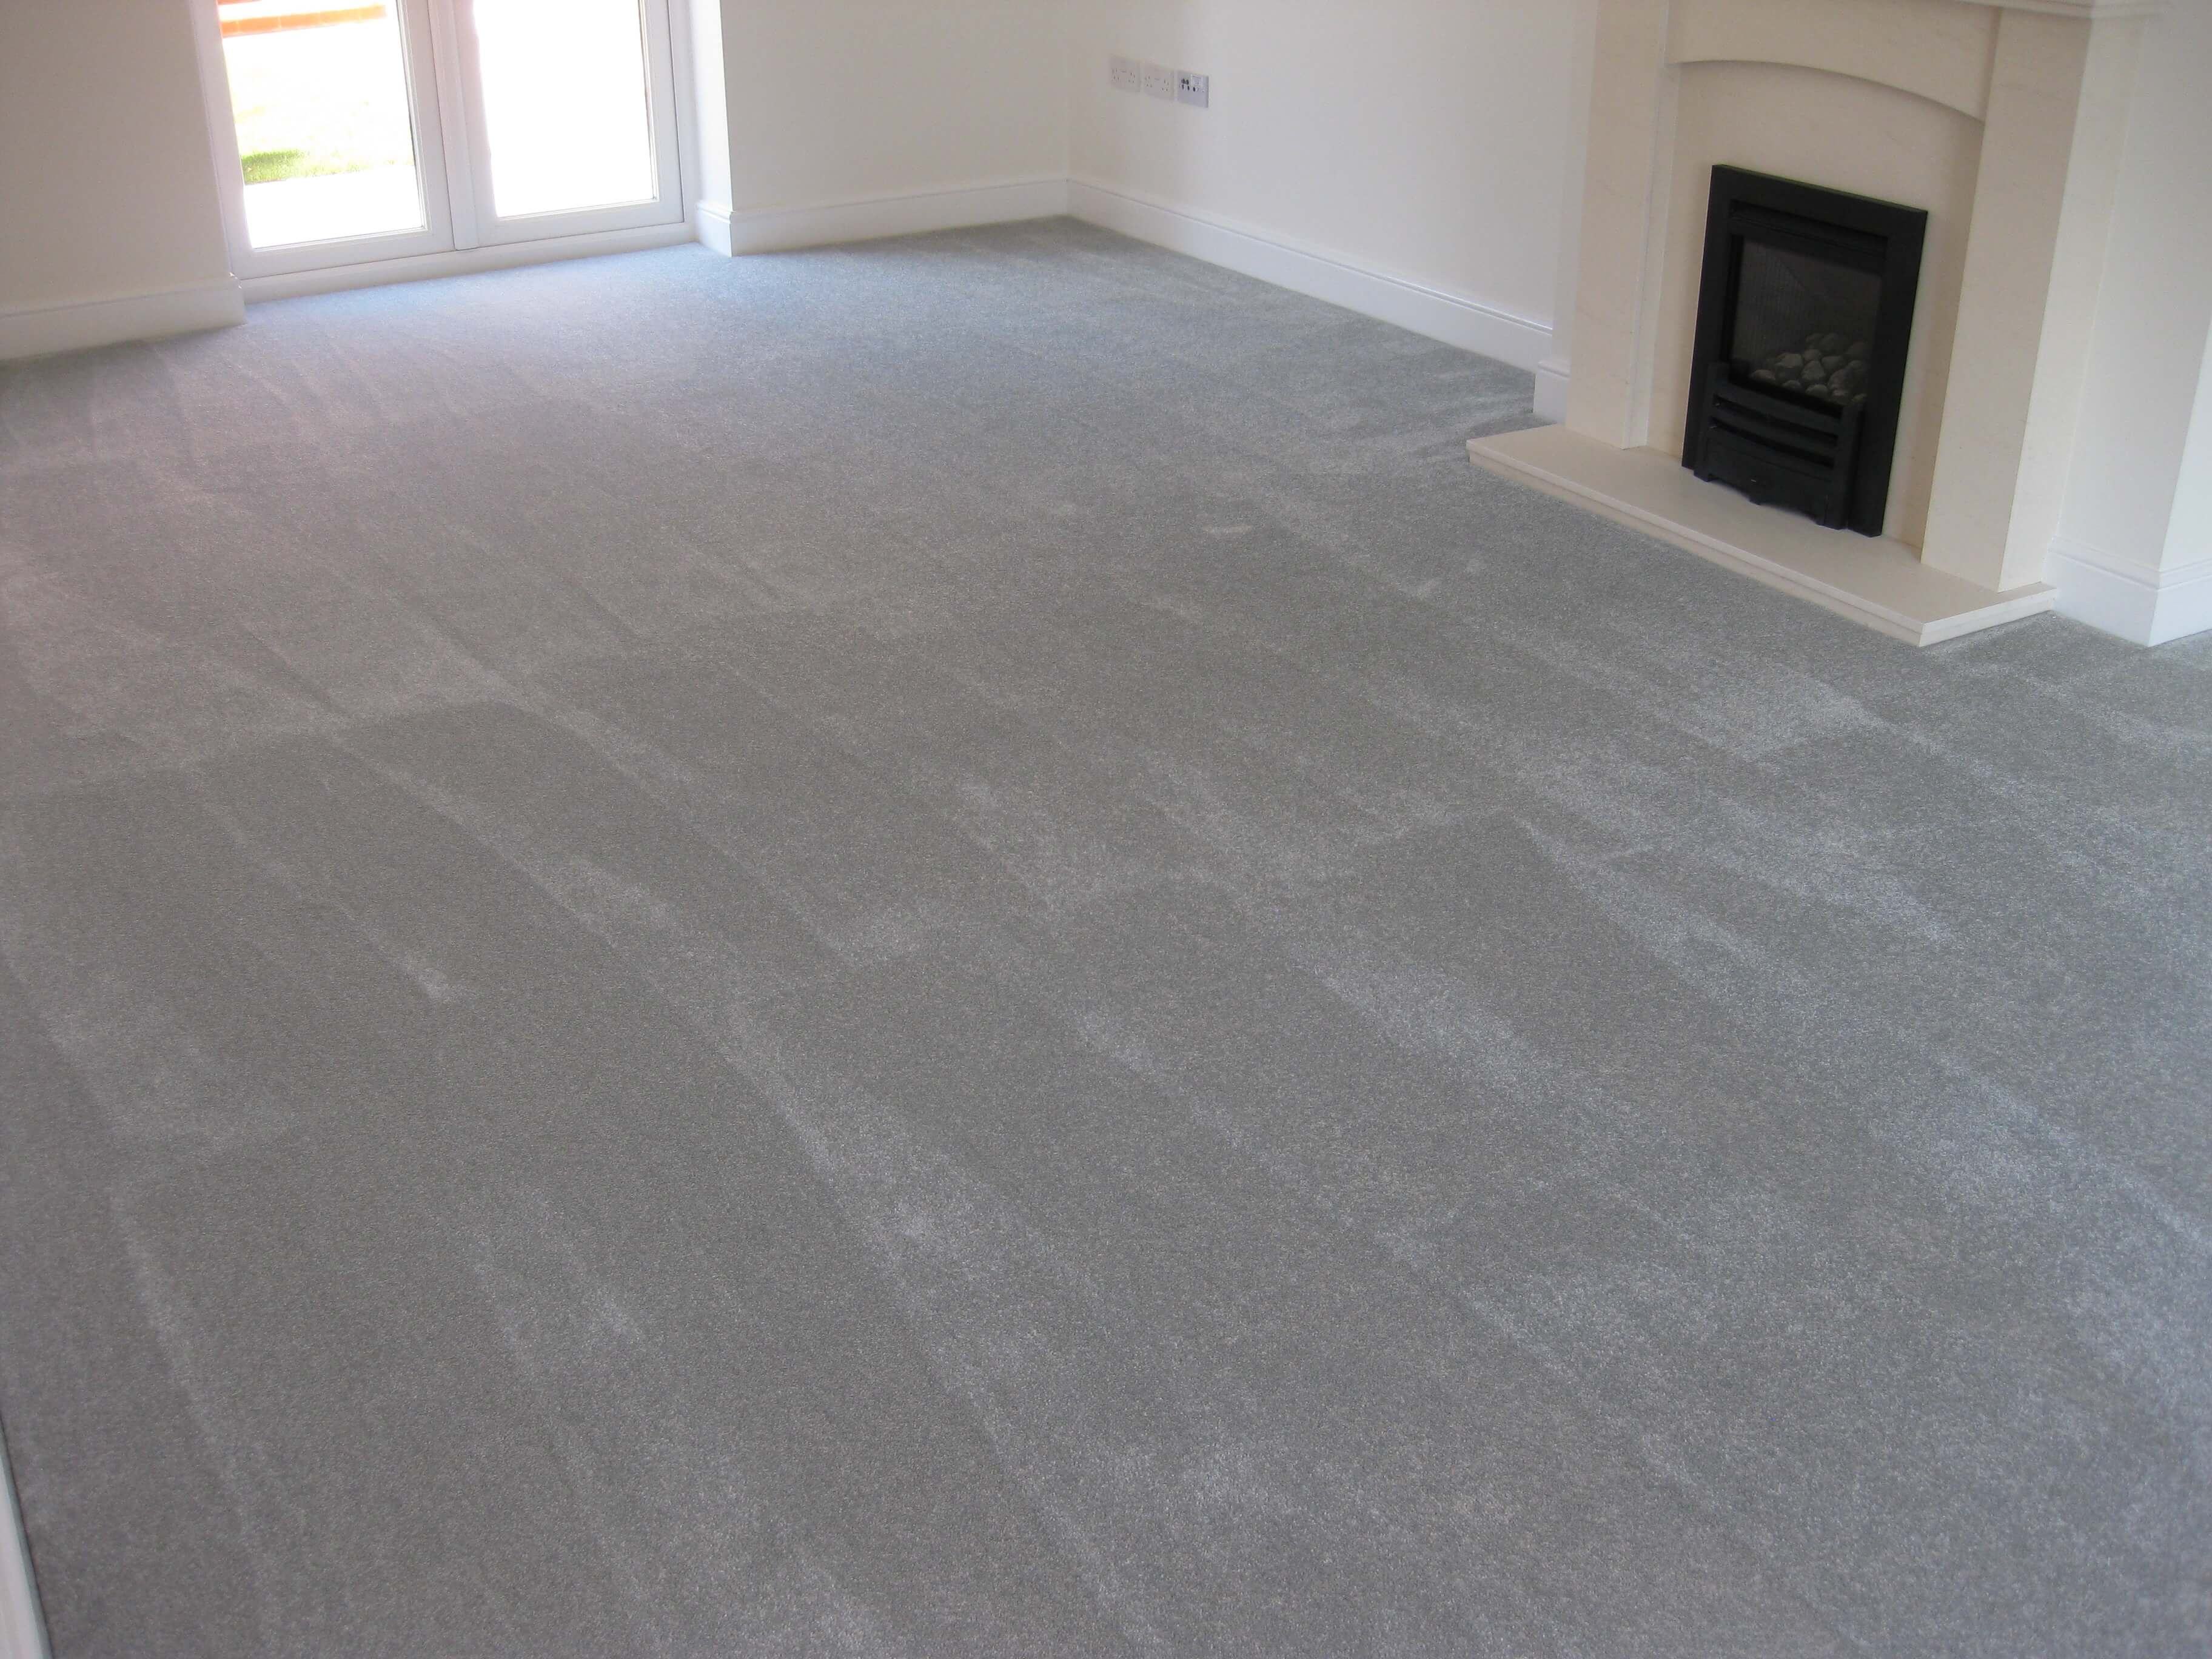 Carpet supply and installation